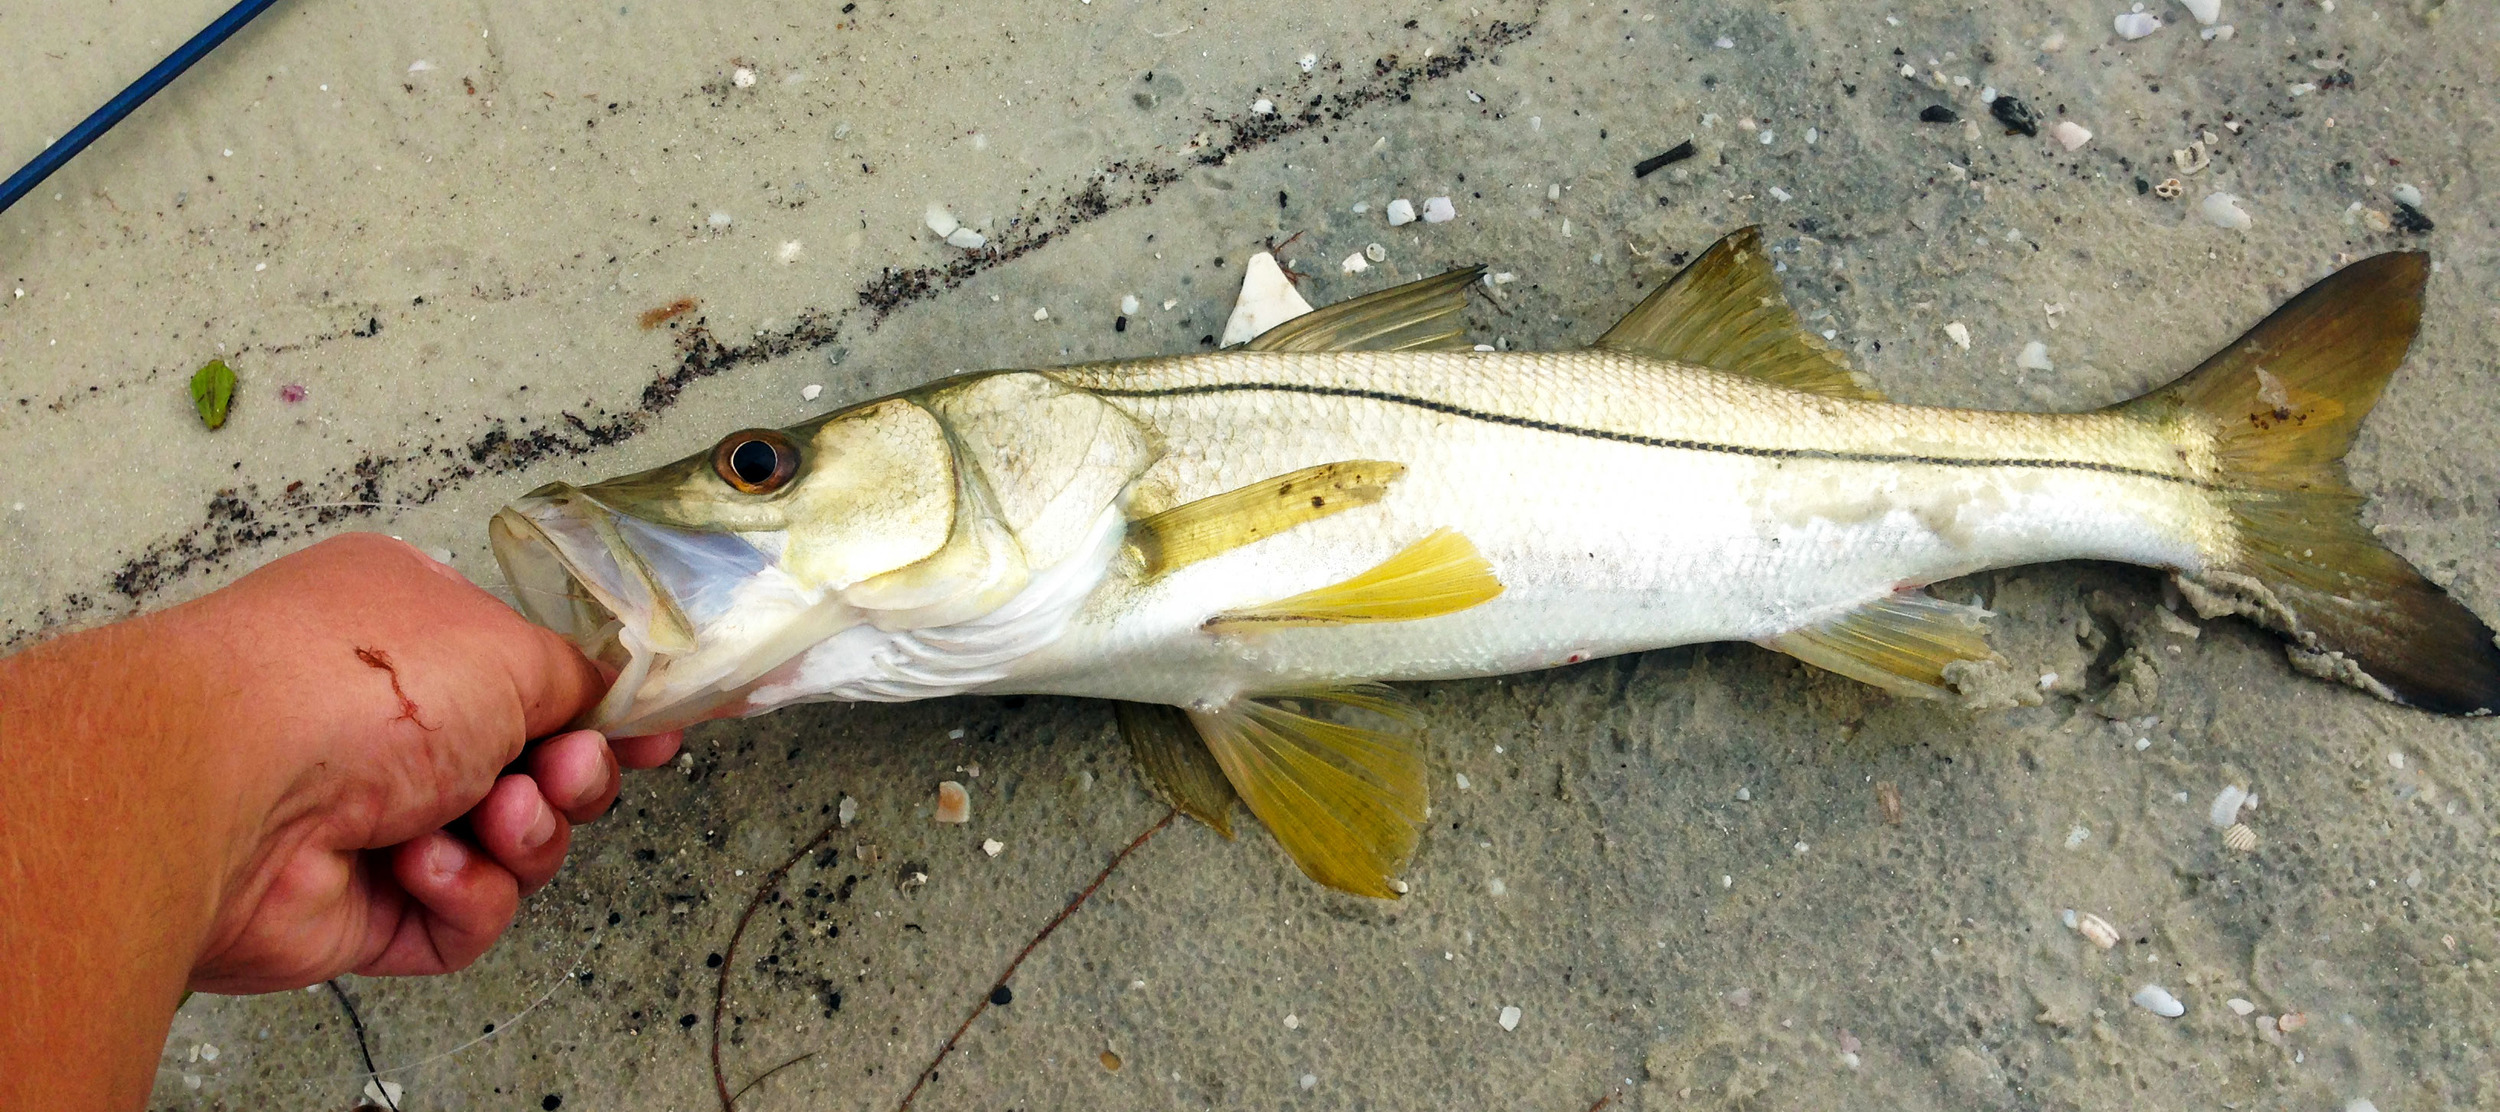 A nice little Florida snook caught by Trey Dyer using a shrimp pattern fly